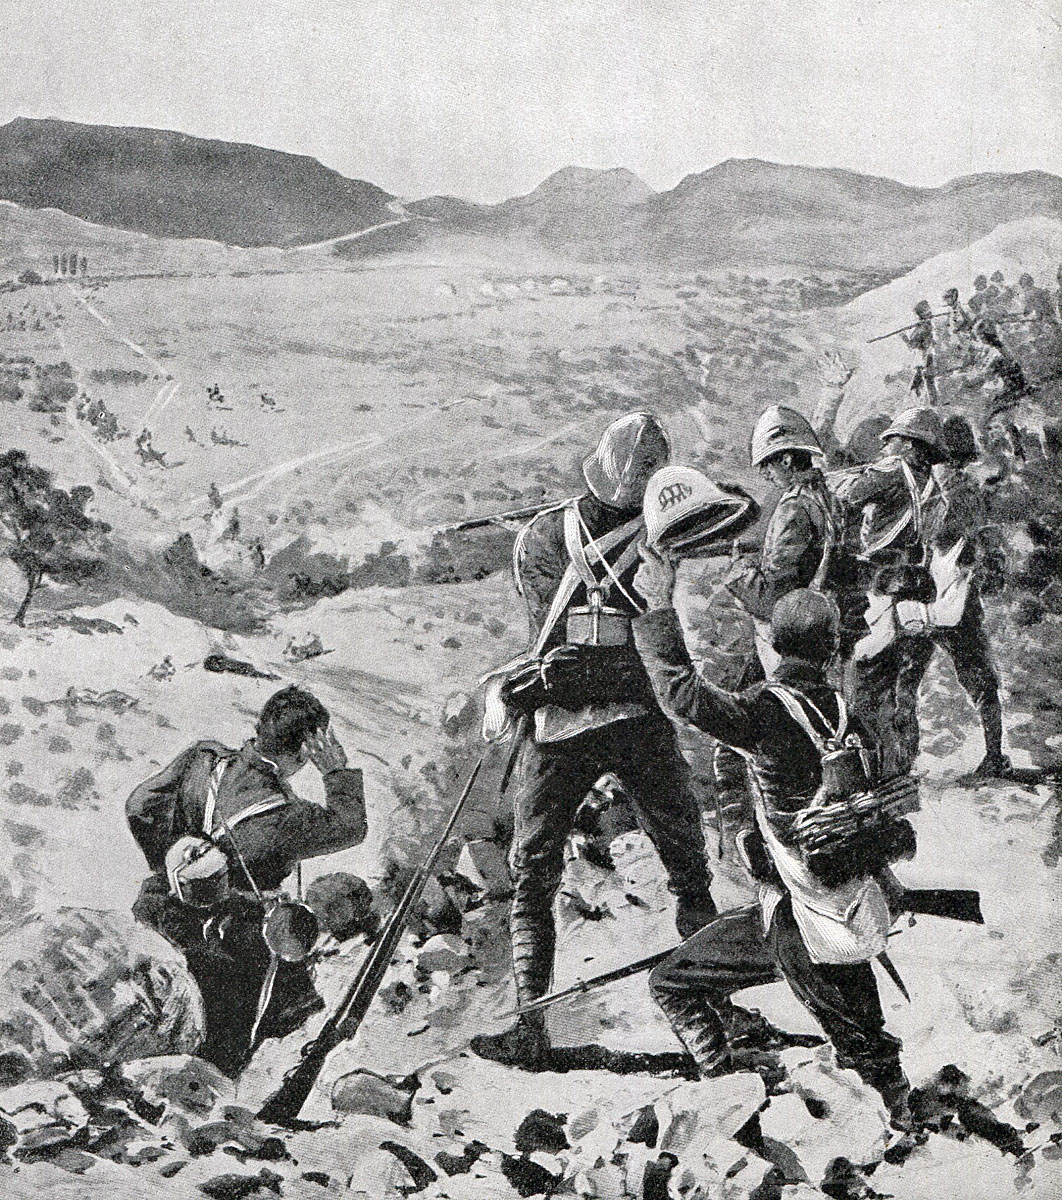 West Yorks watching the Boers retreat from the top of Pieters Hill: Battle of Pieters, fought from 14th to 28th February 1900 in the Great Boer War: picture by H.C. Seppings Wright